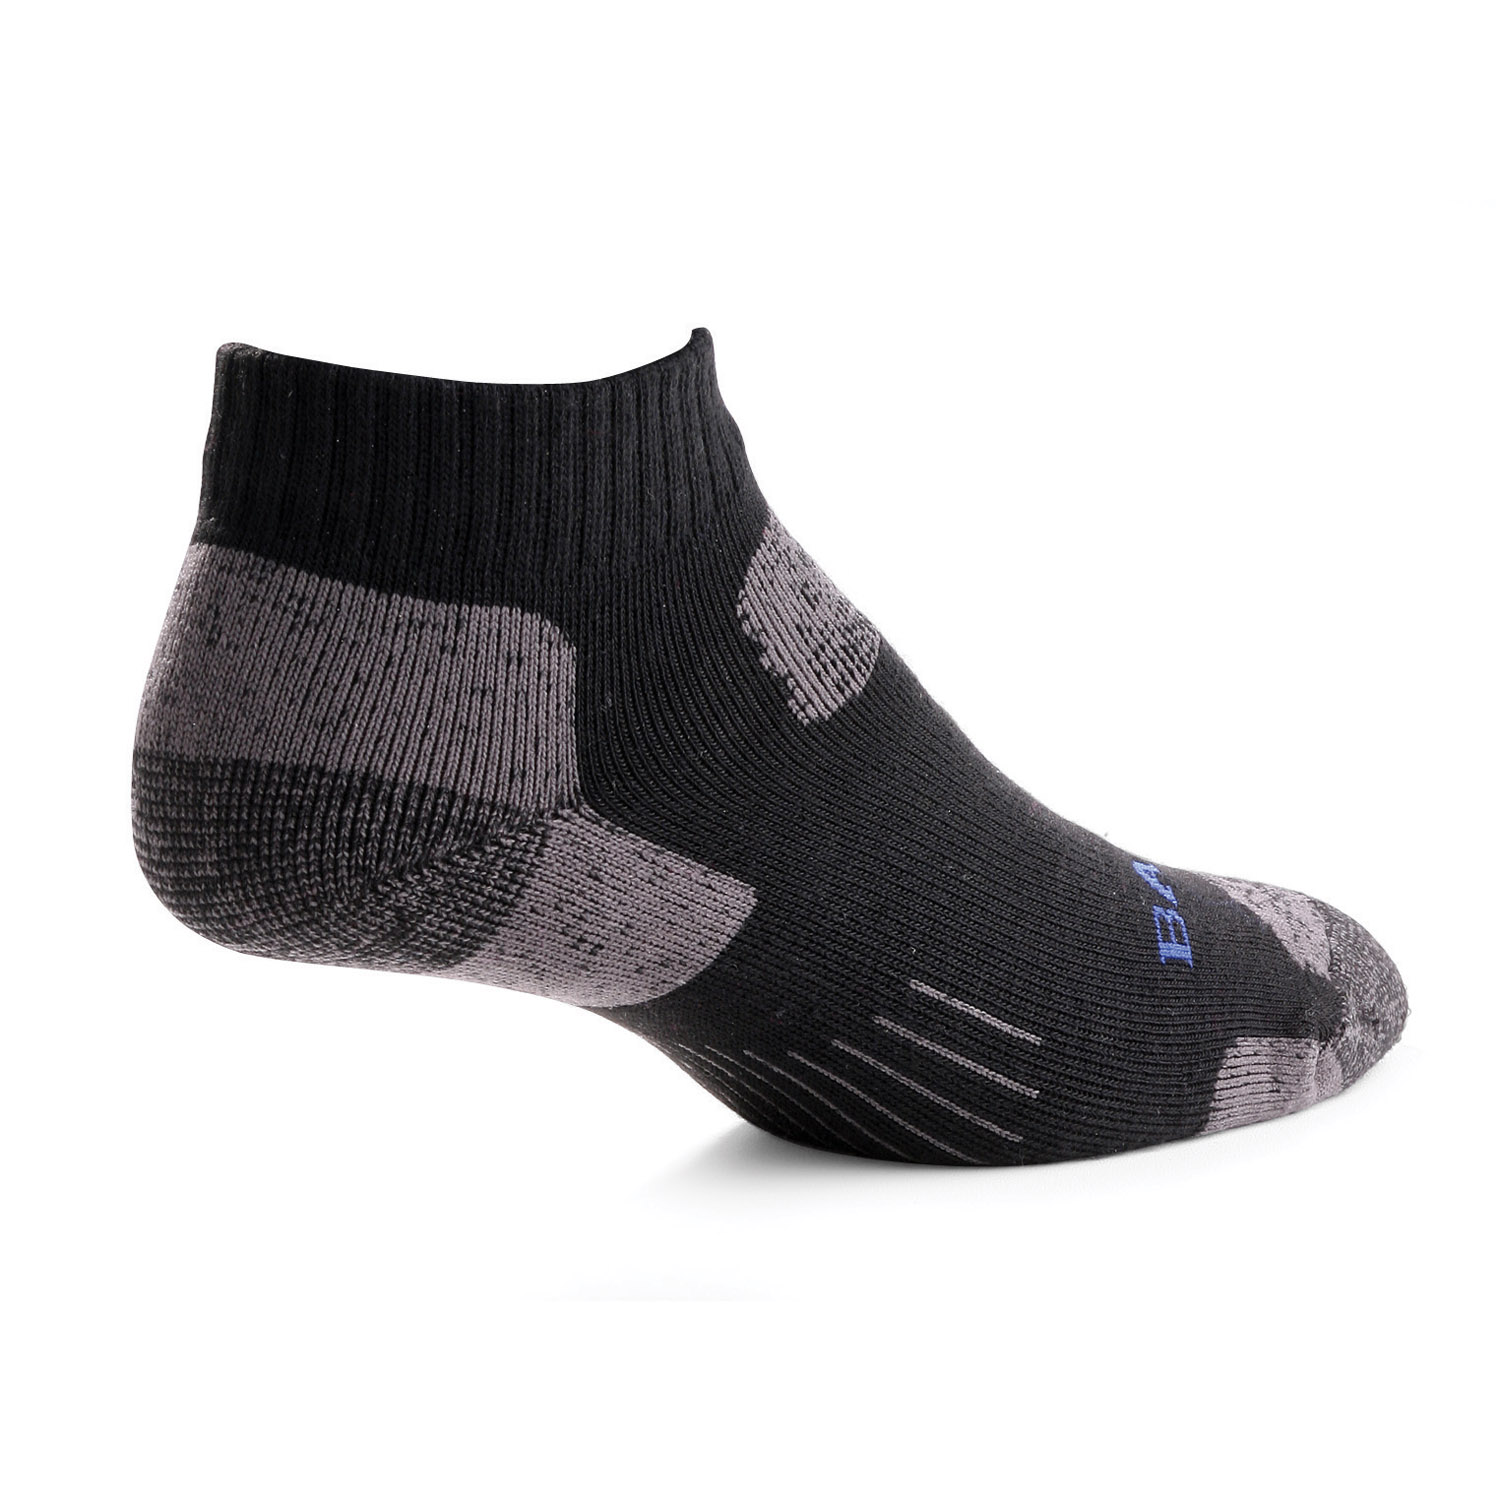 Bates Tactical Low Cut Uniform Socks